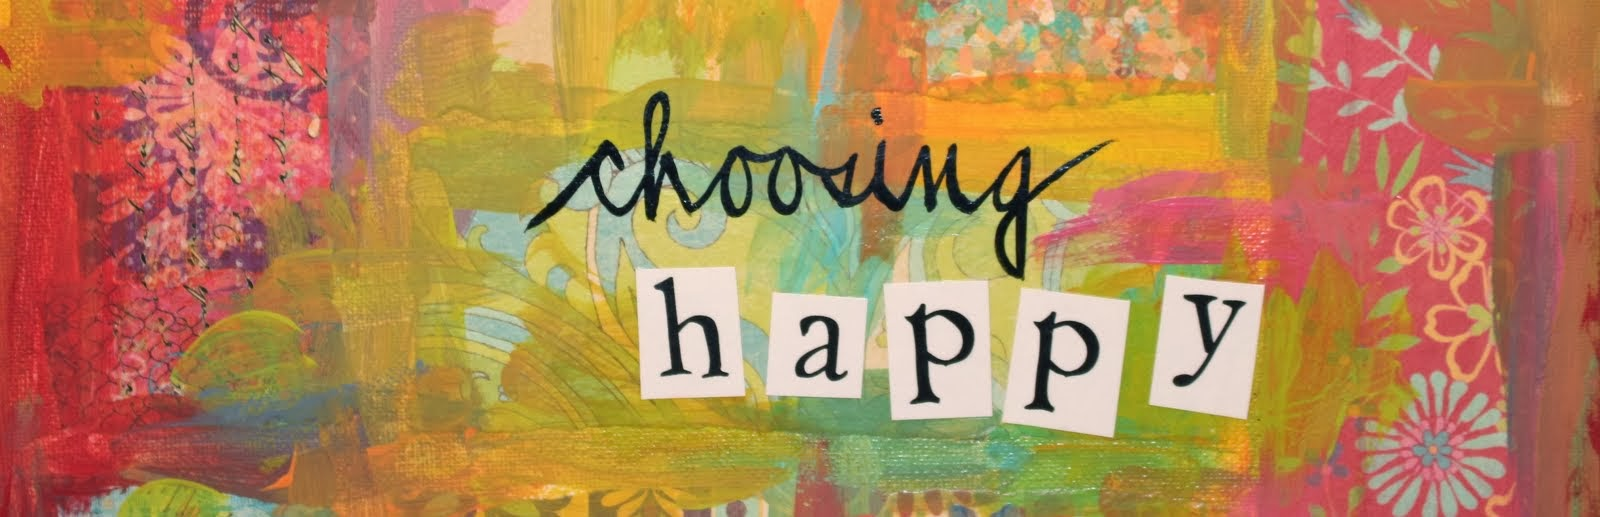 Choosing Happy